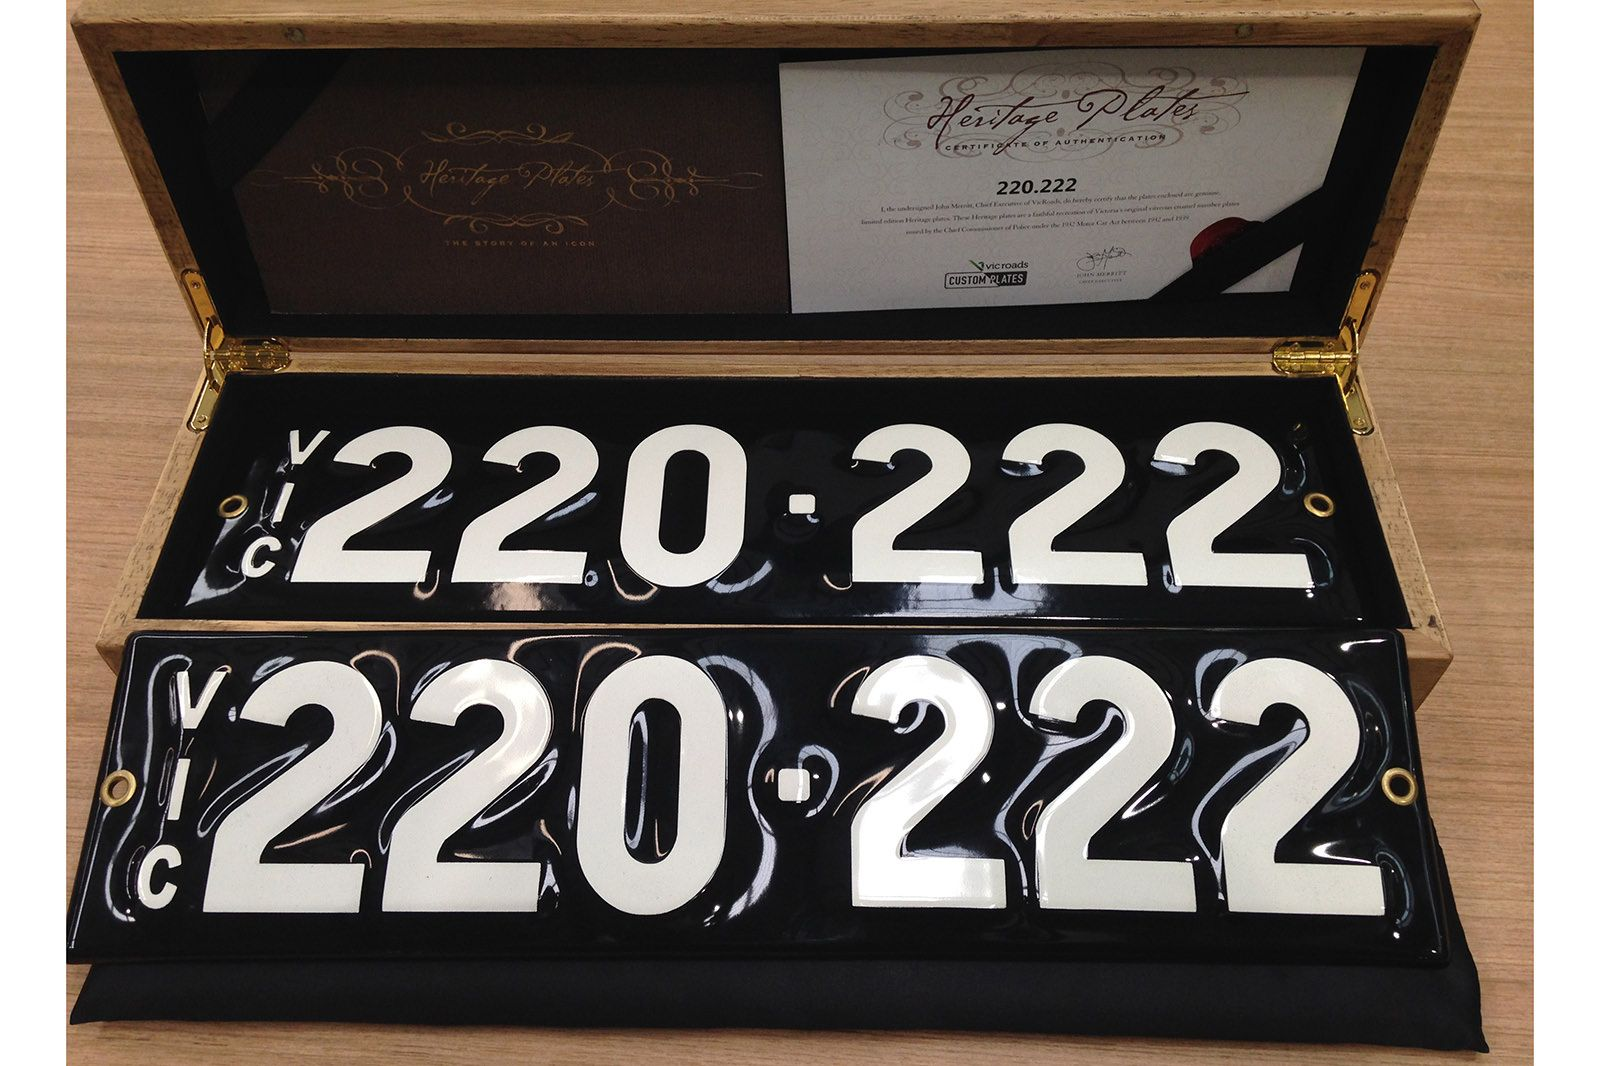 Victorian Numerical Heritage Plate - '220.222'